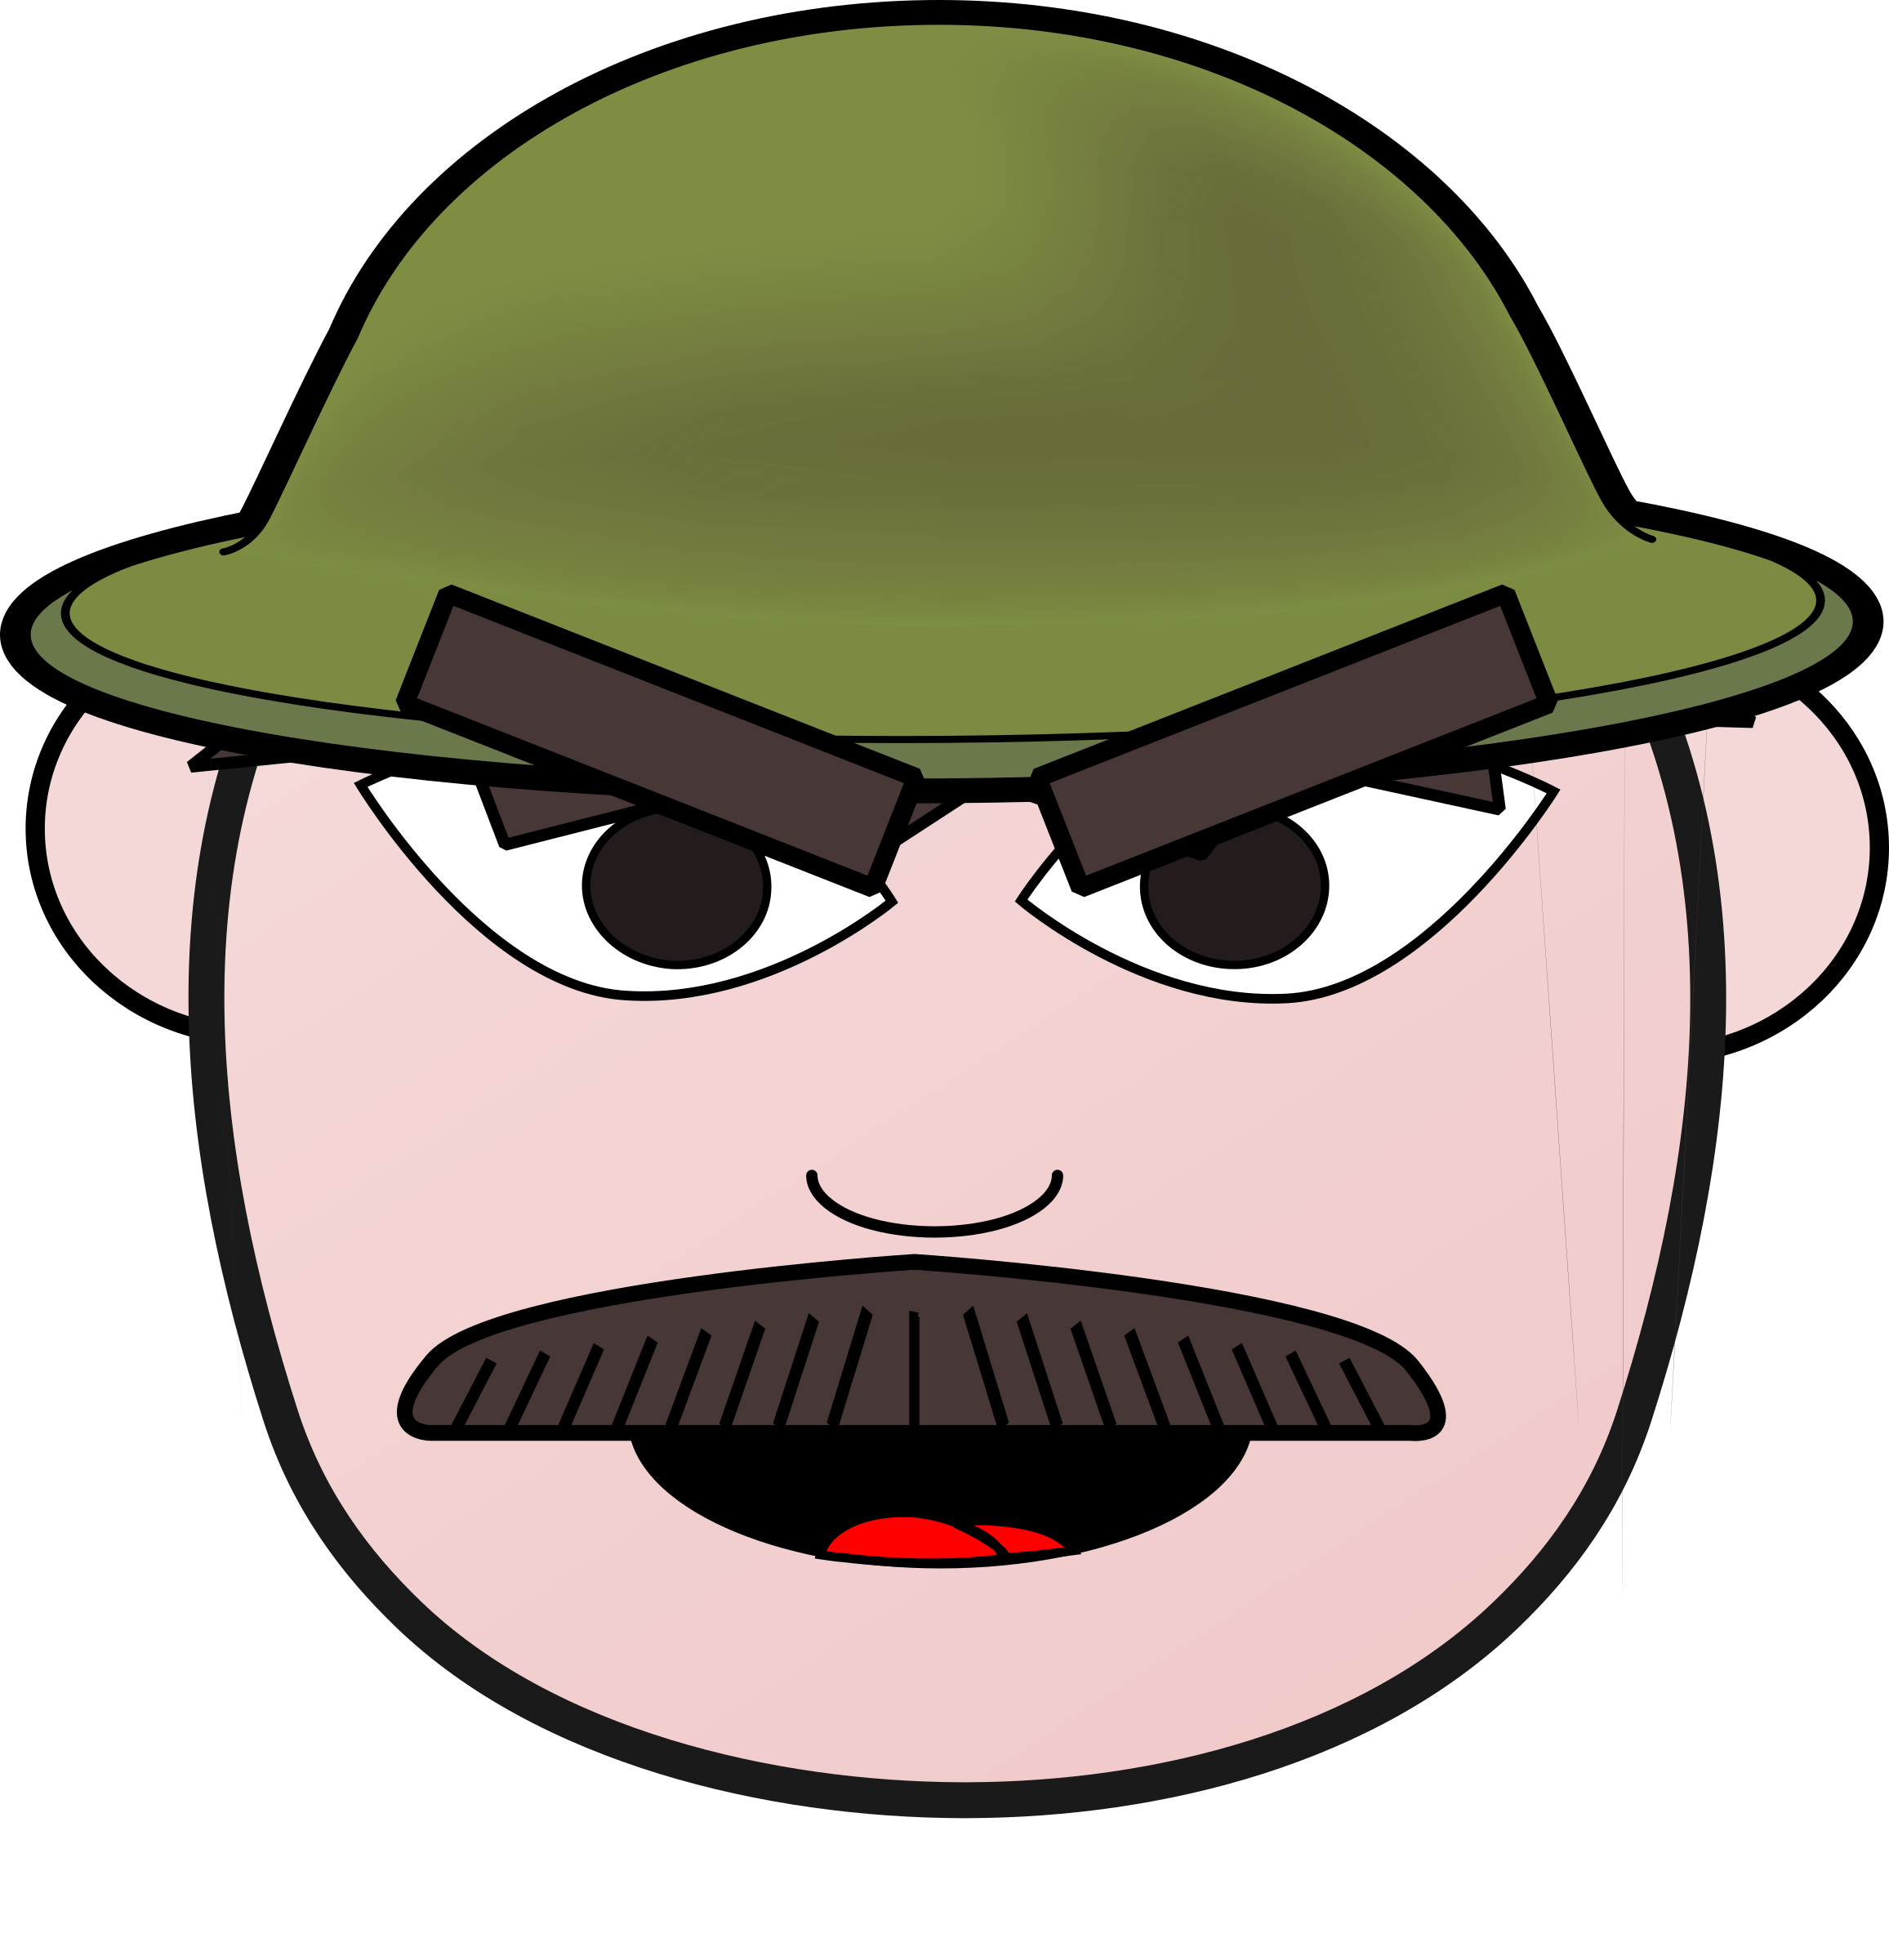 Angry soldier man icons. Nose clipart nose hair